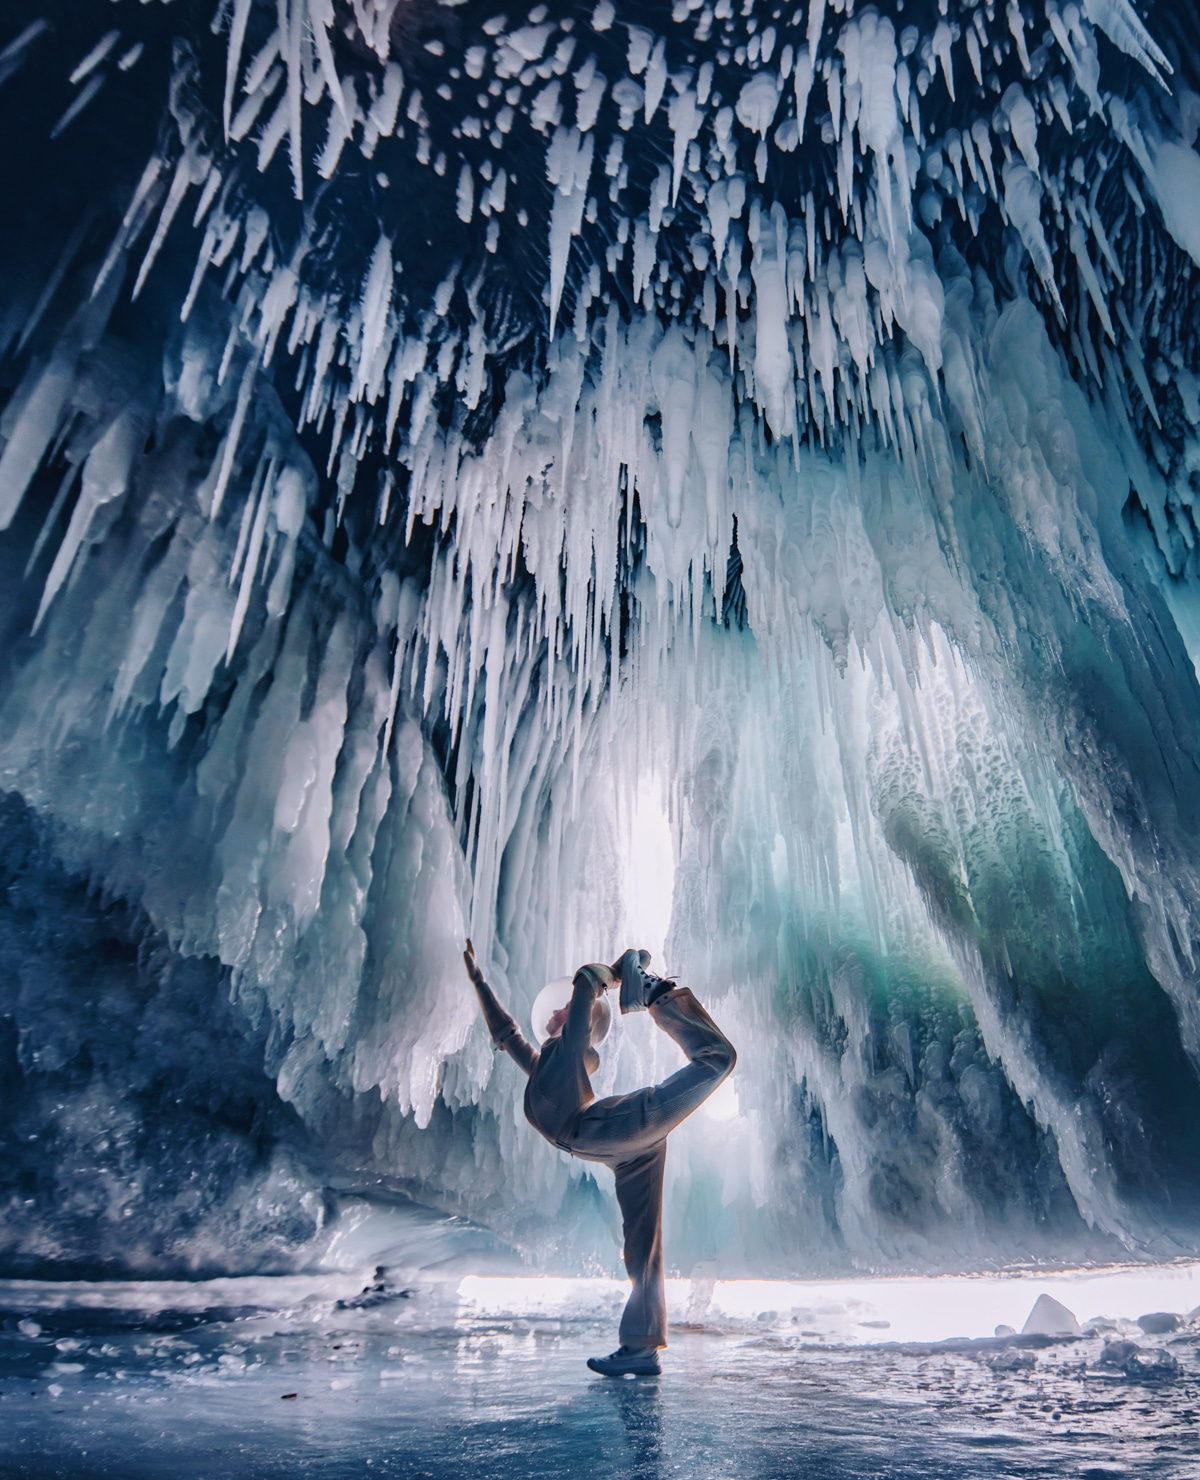 Kristina Makeeva - Ice and Fashion at Lake Baikal